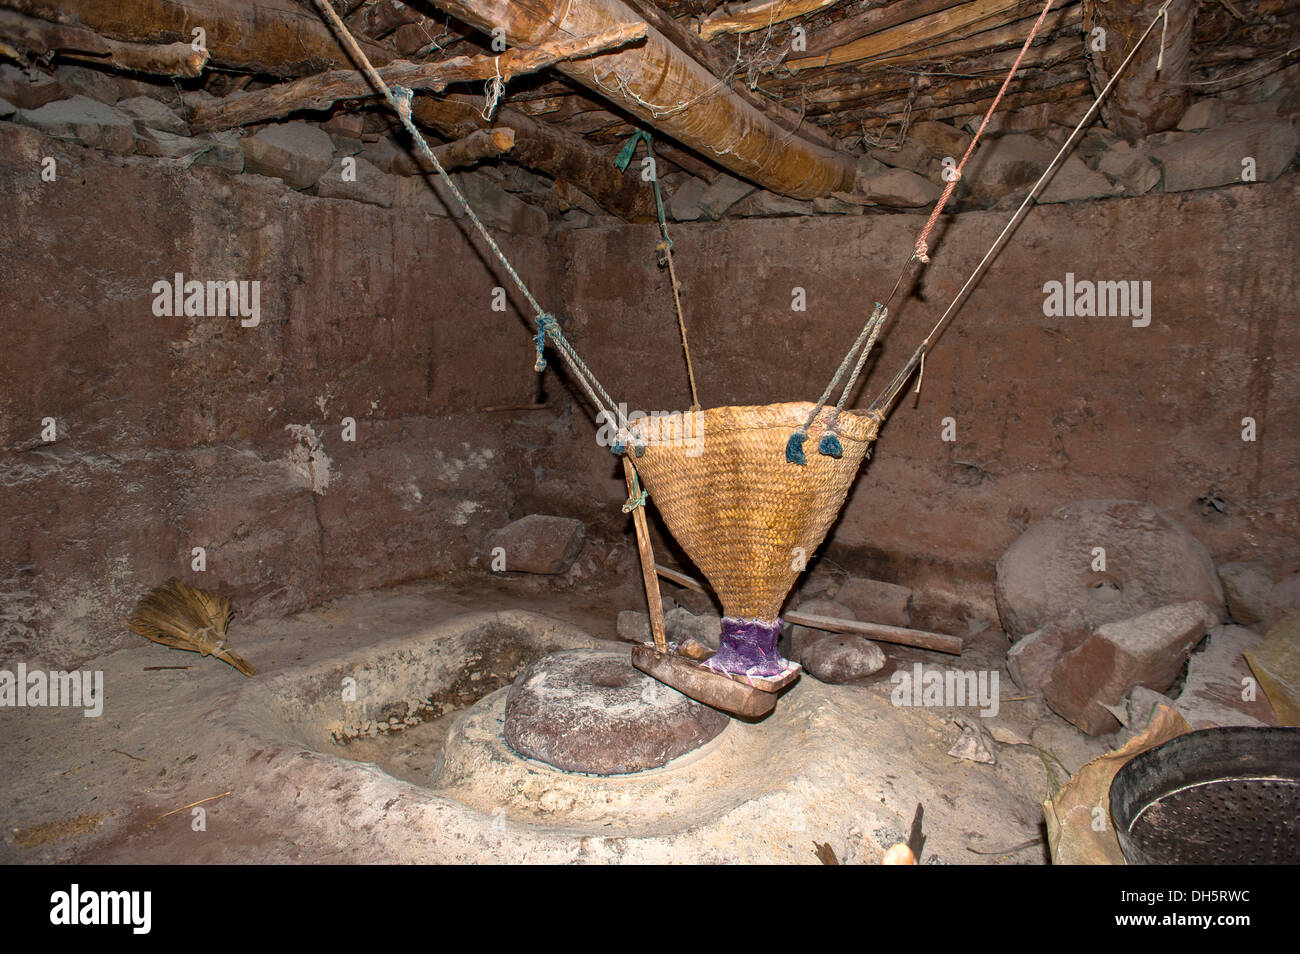 Old grain mill and a grinding stone on a stream, Ait Bouguemez, High Atlas, Morocco, Africa - Stock Image